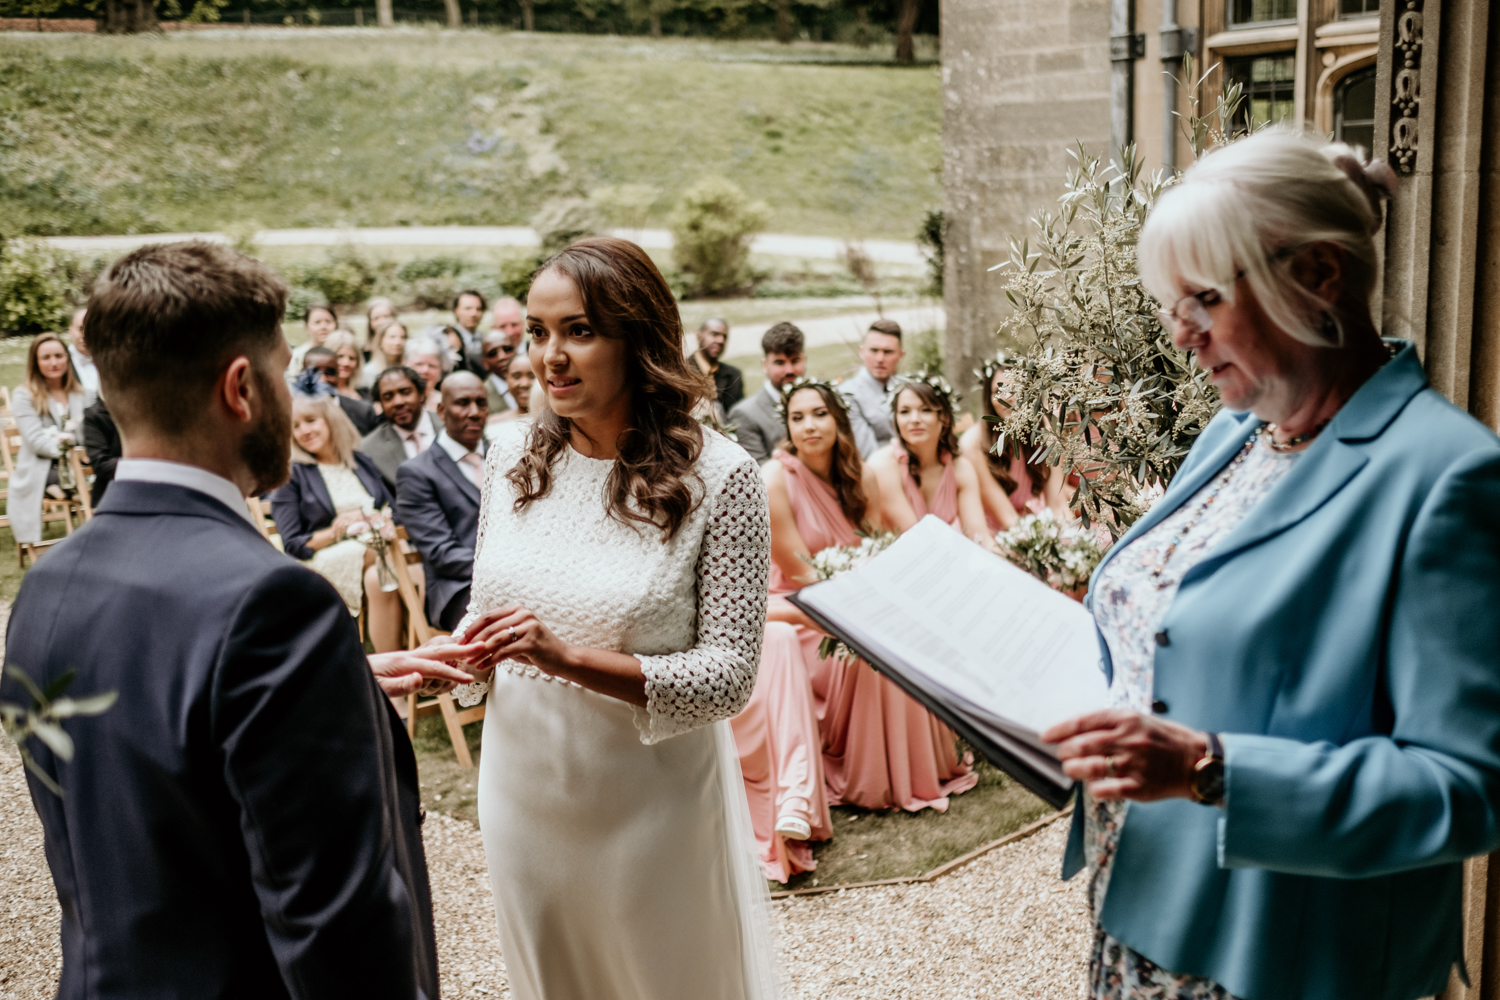 bride and groom exchange rings at Coombe Lodge Blagdon wedding venue